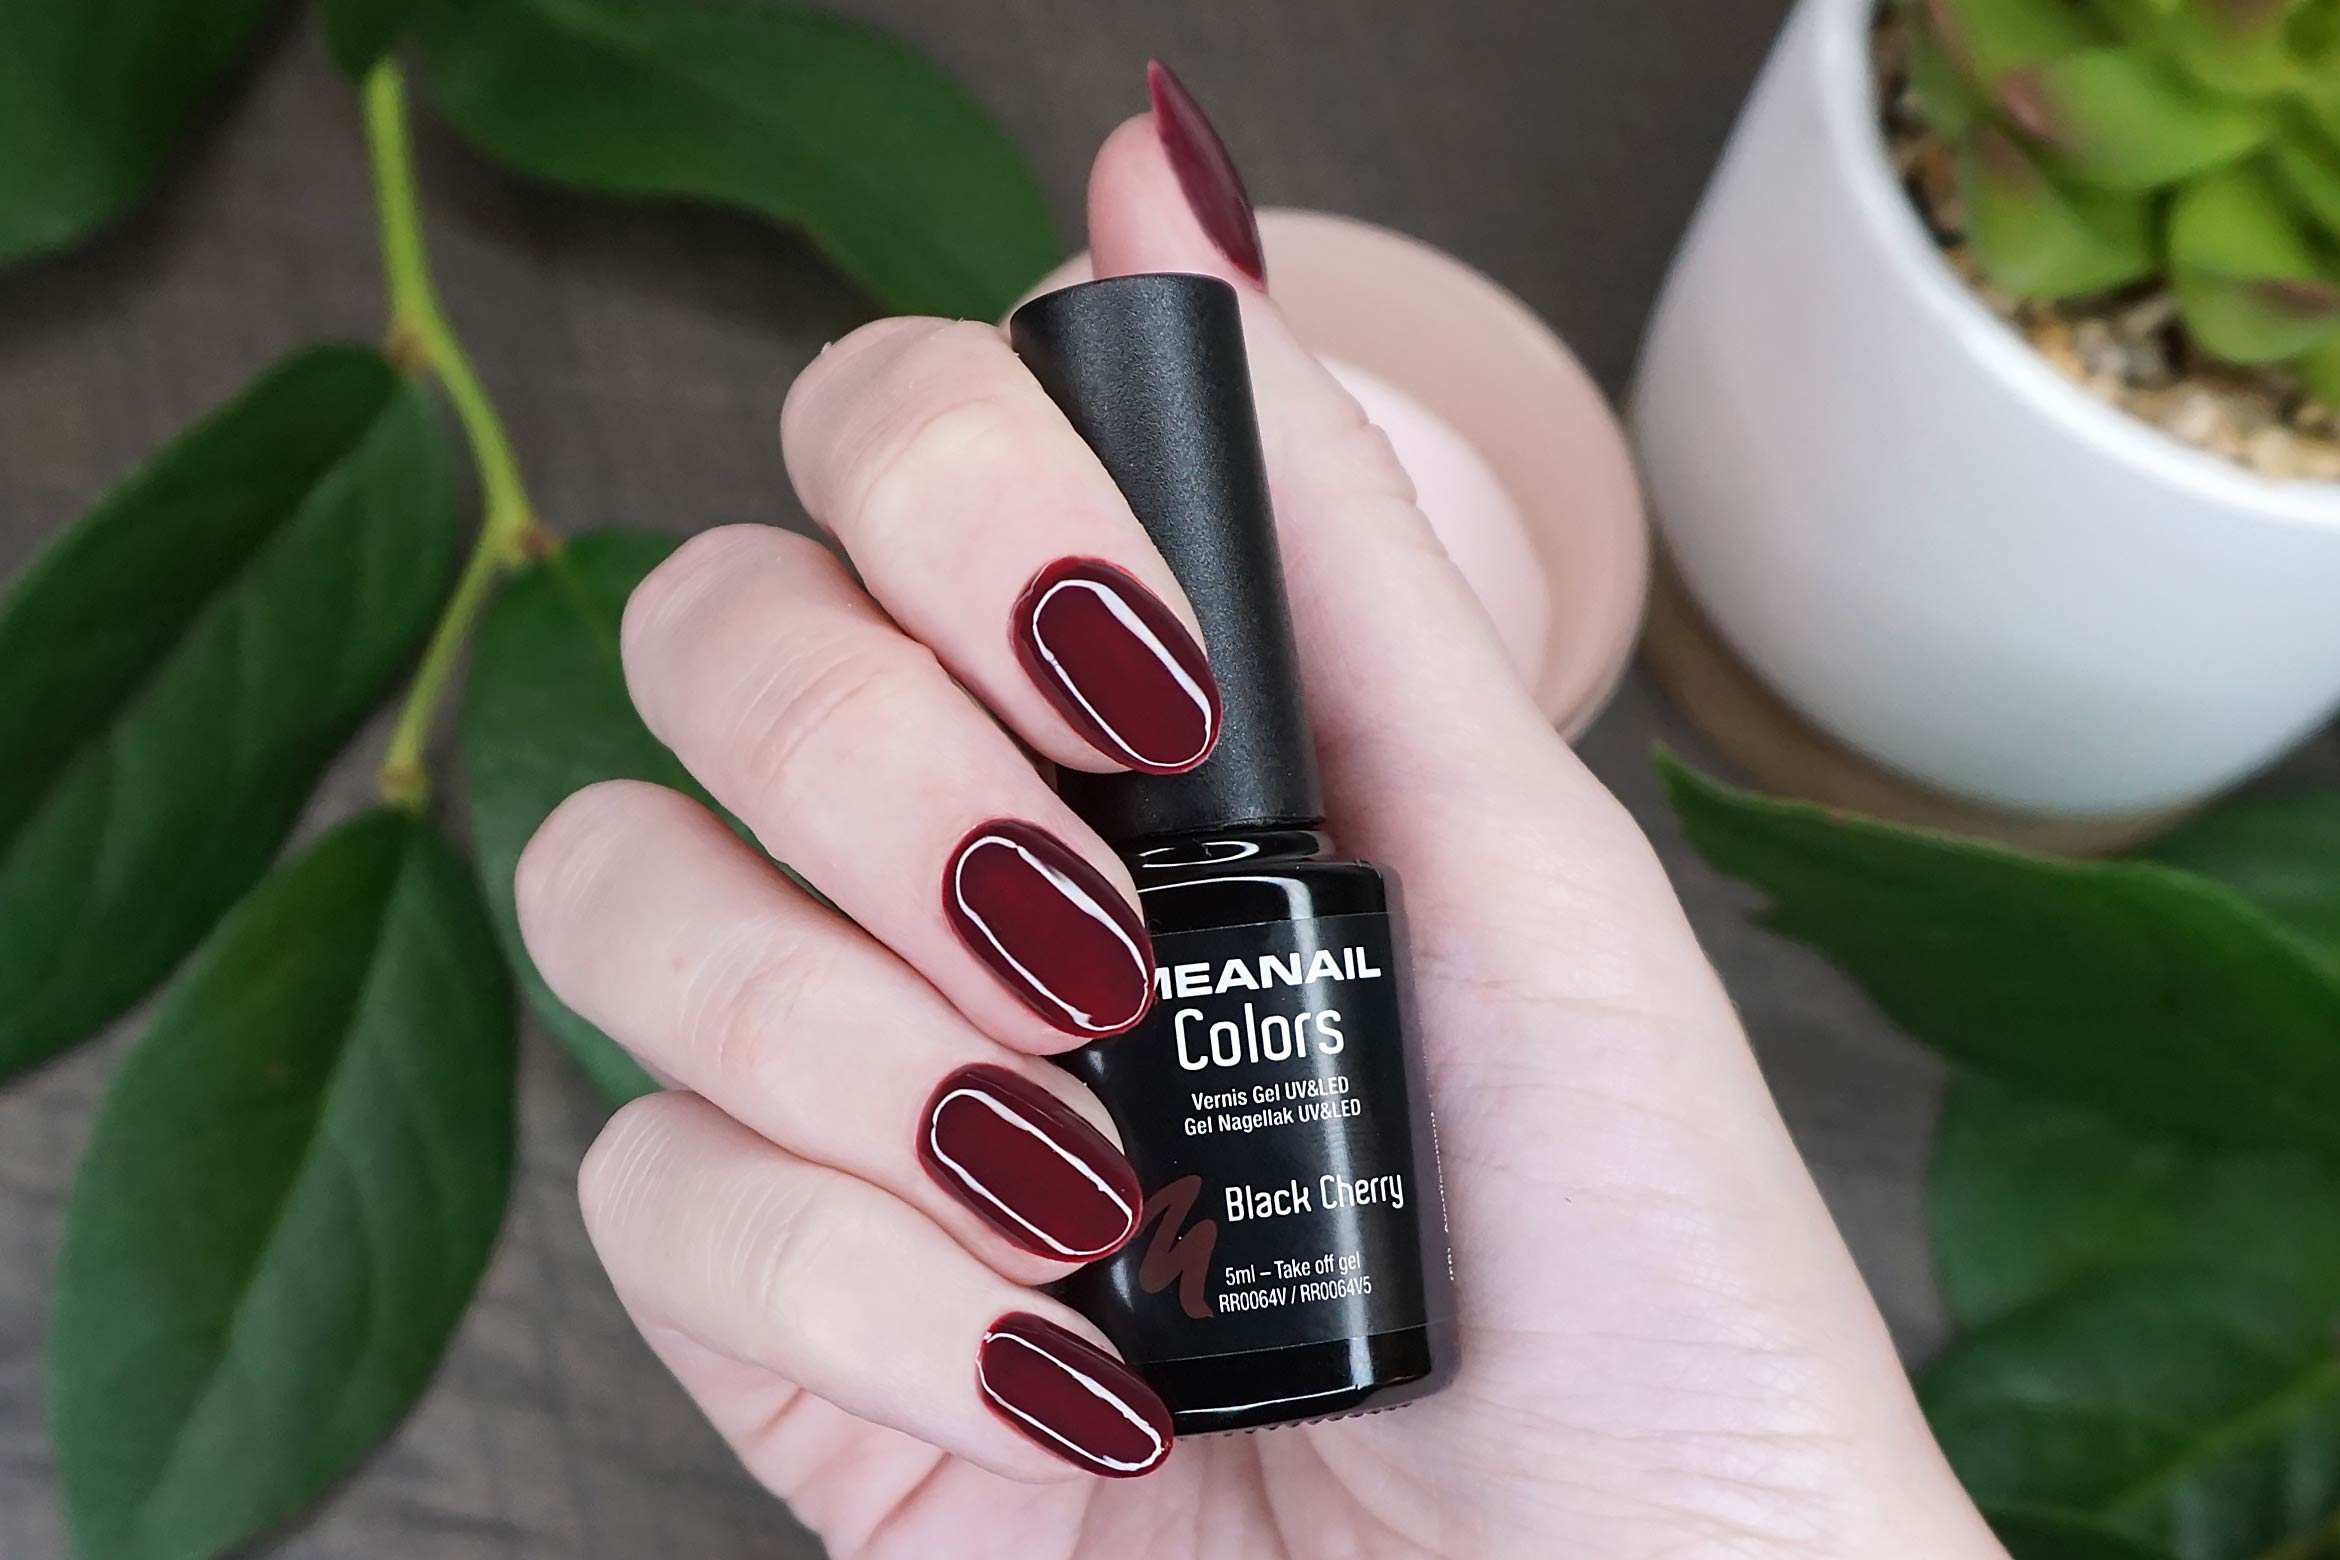 meanail black cherry swatch